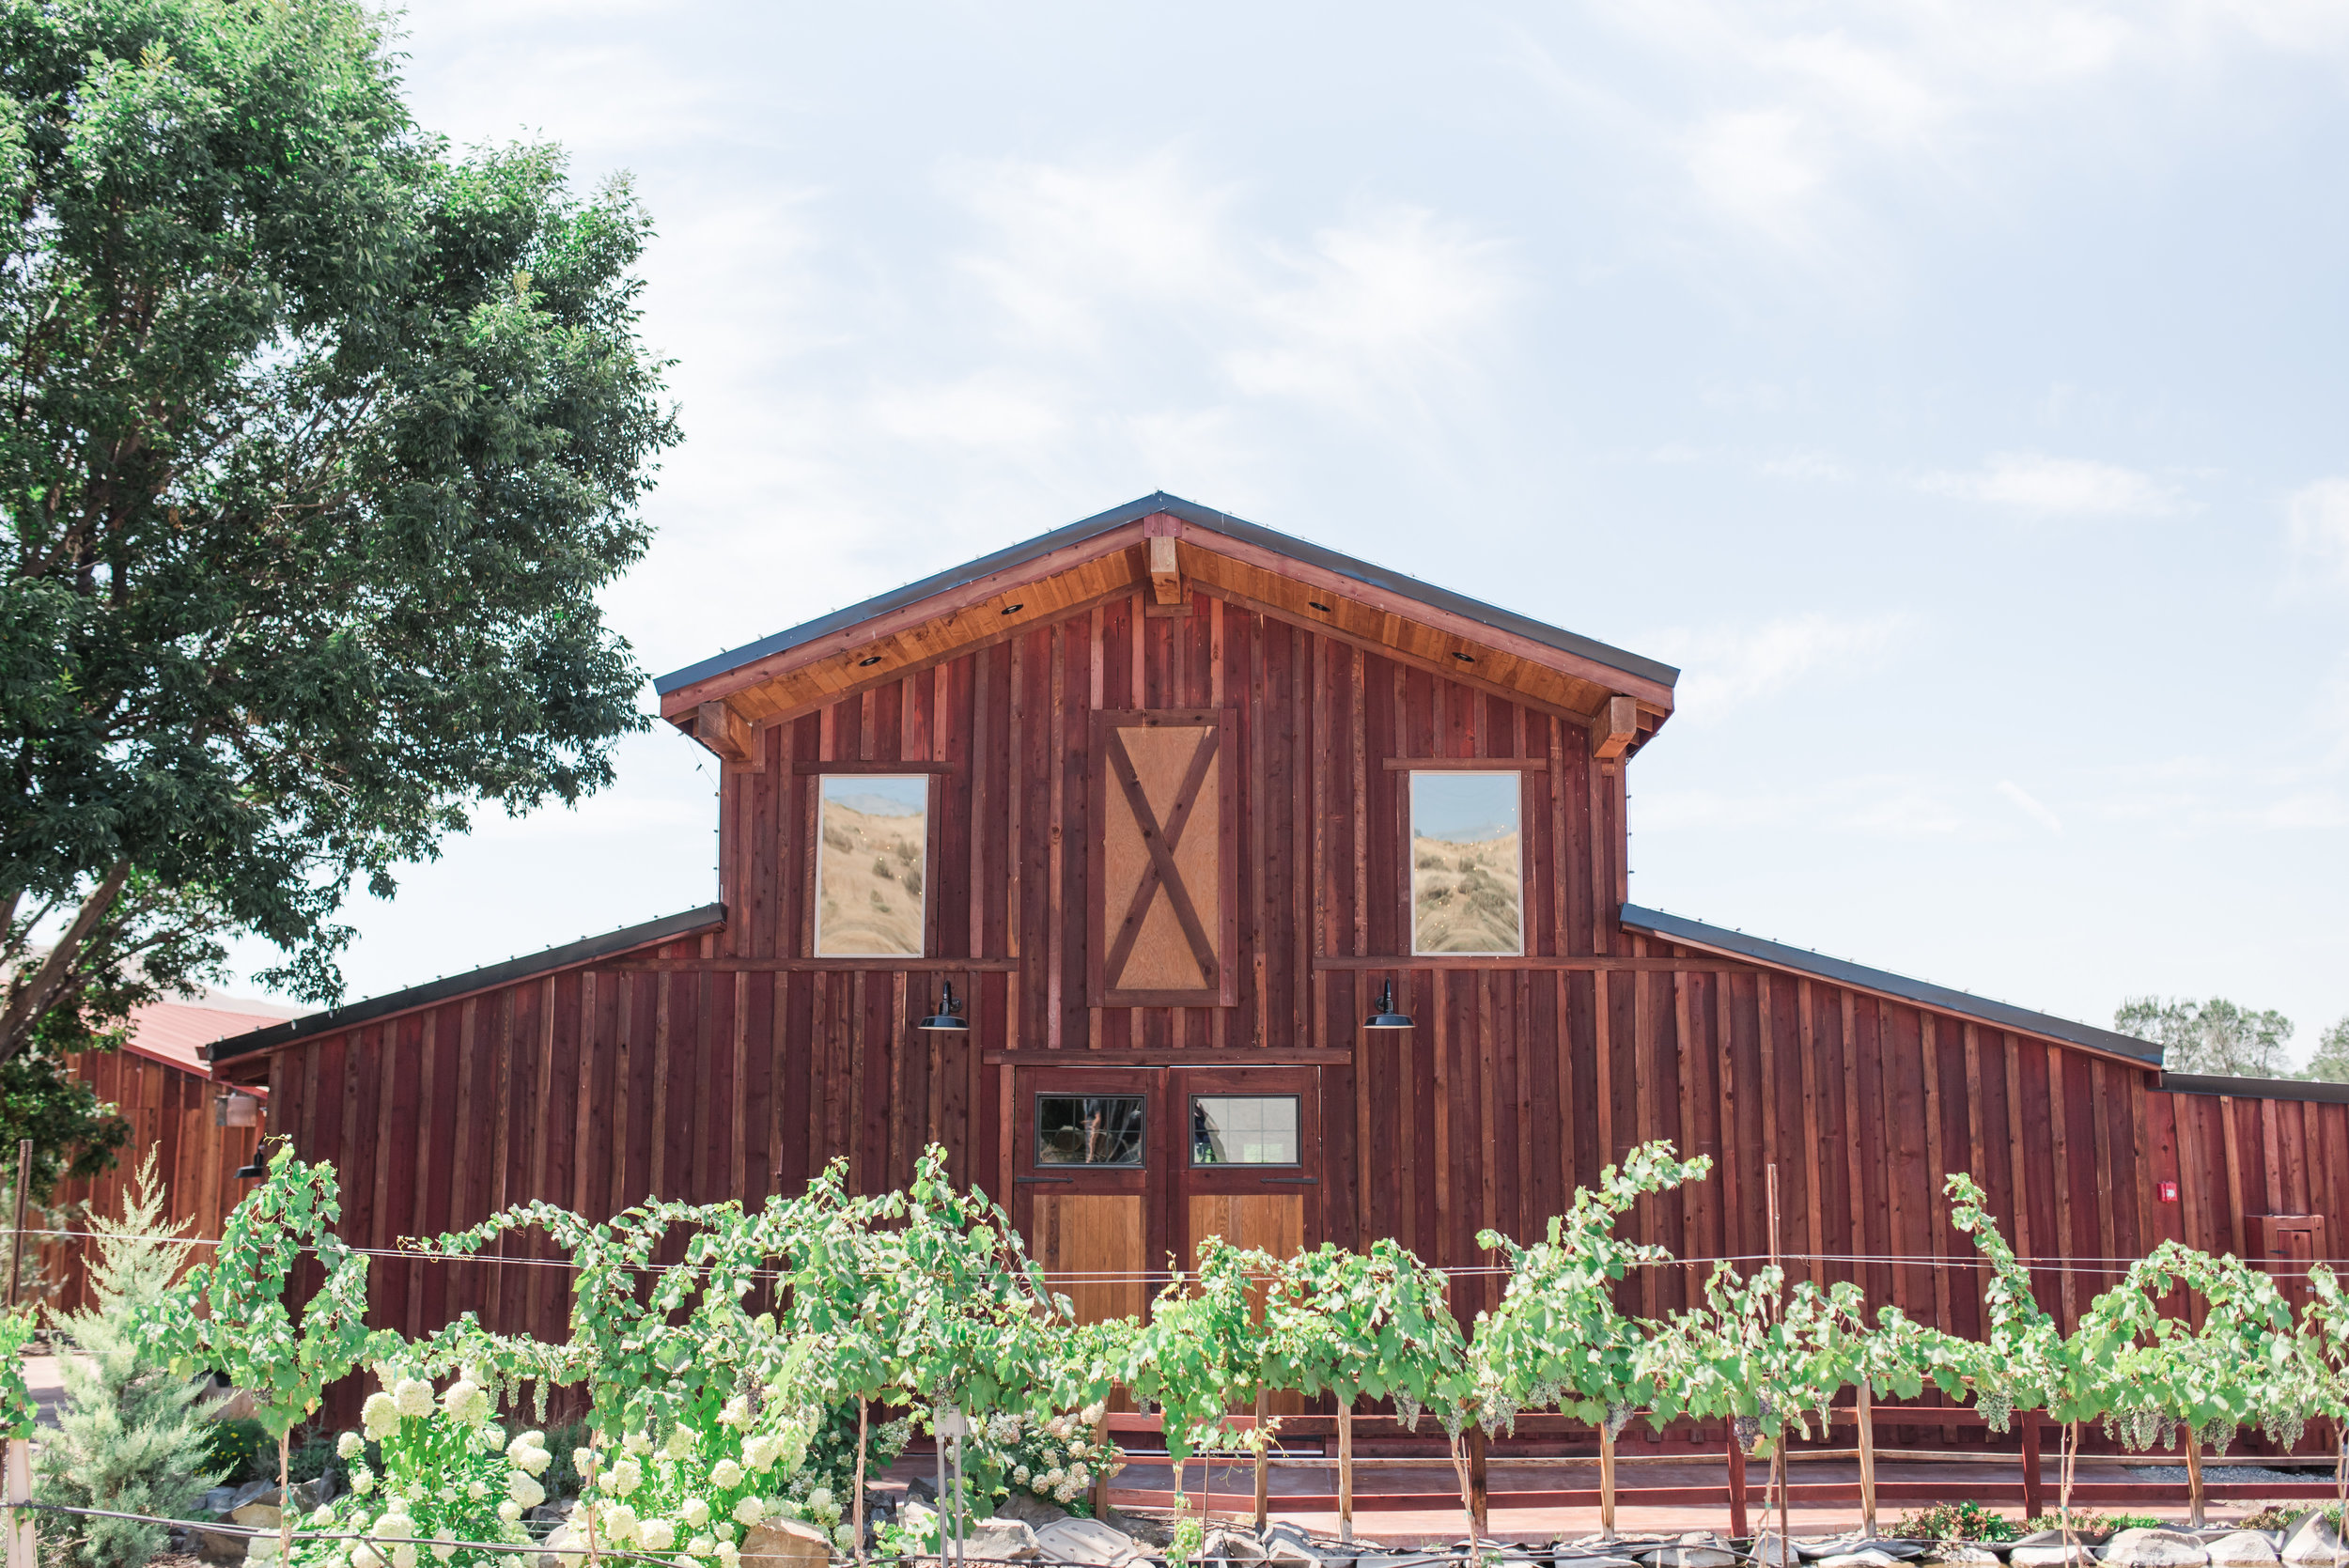 A Sugar Pine Barn Wedding - The Overwhelmed Bride Wedding Ideas Blog